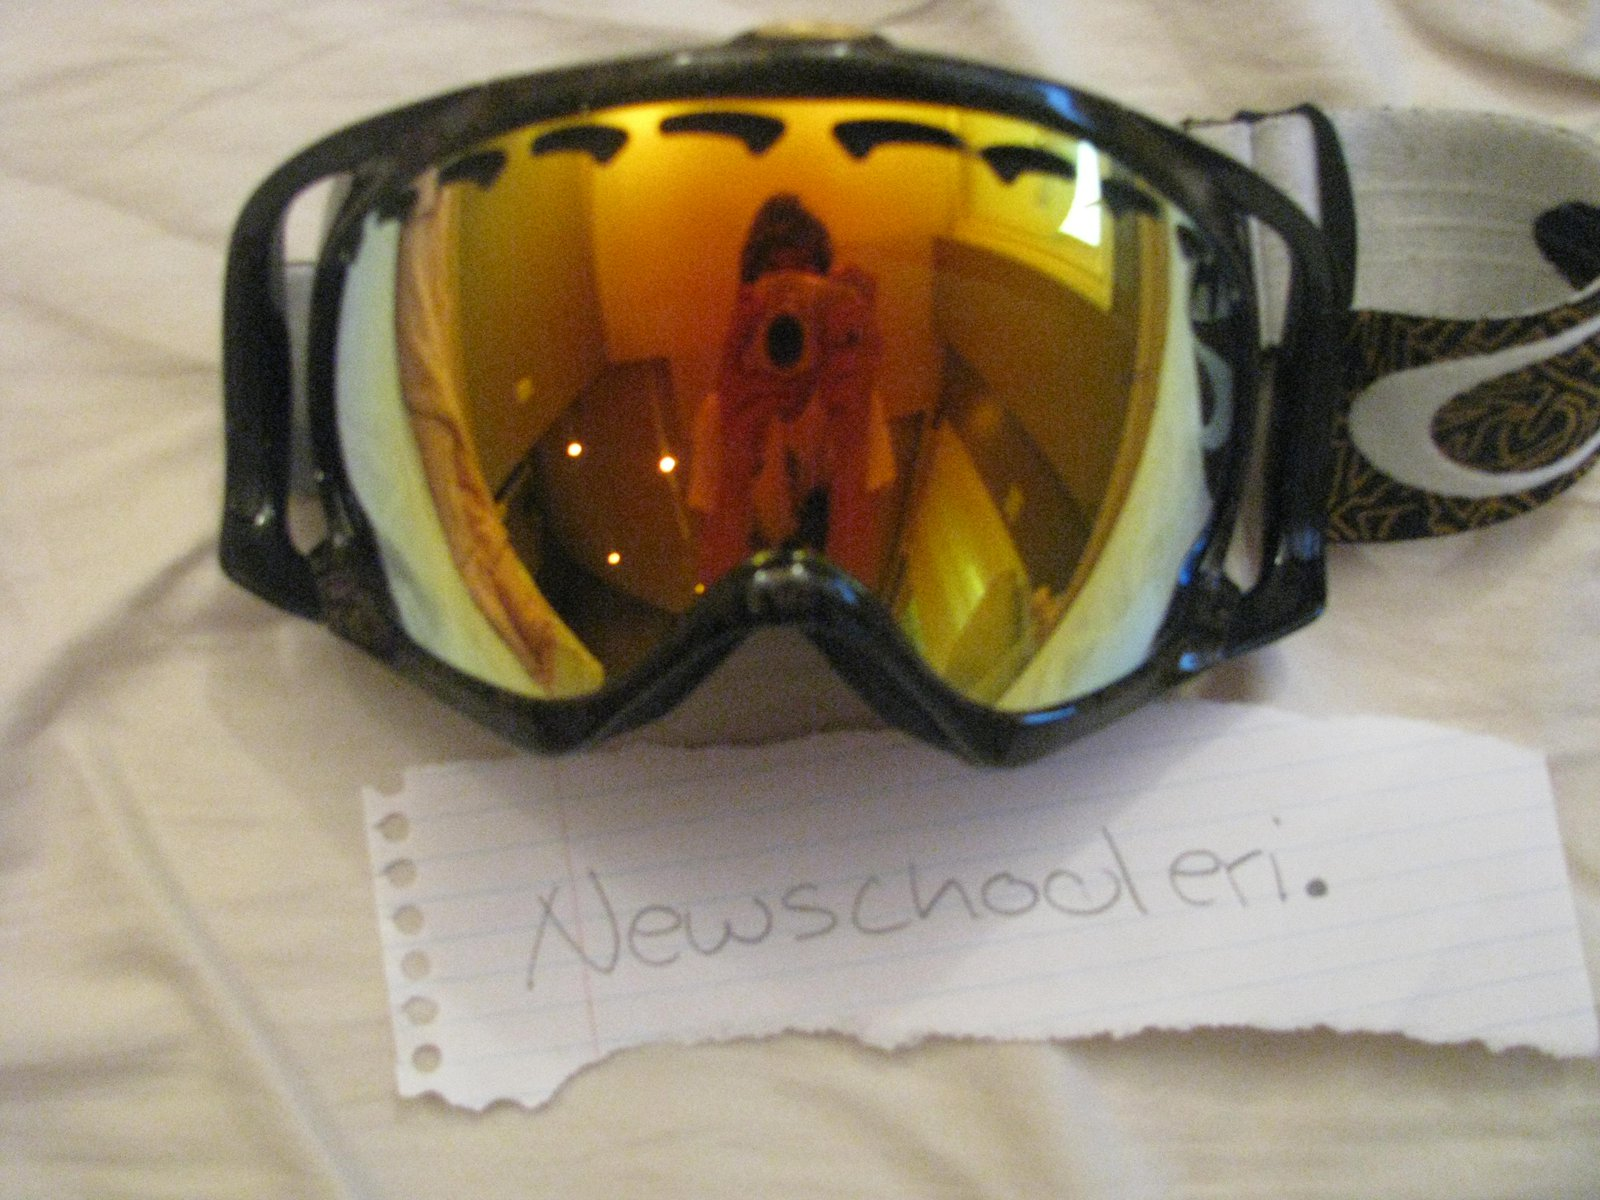 FOR SALE Fire Irid (just lens)